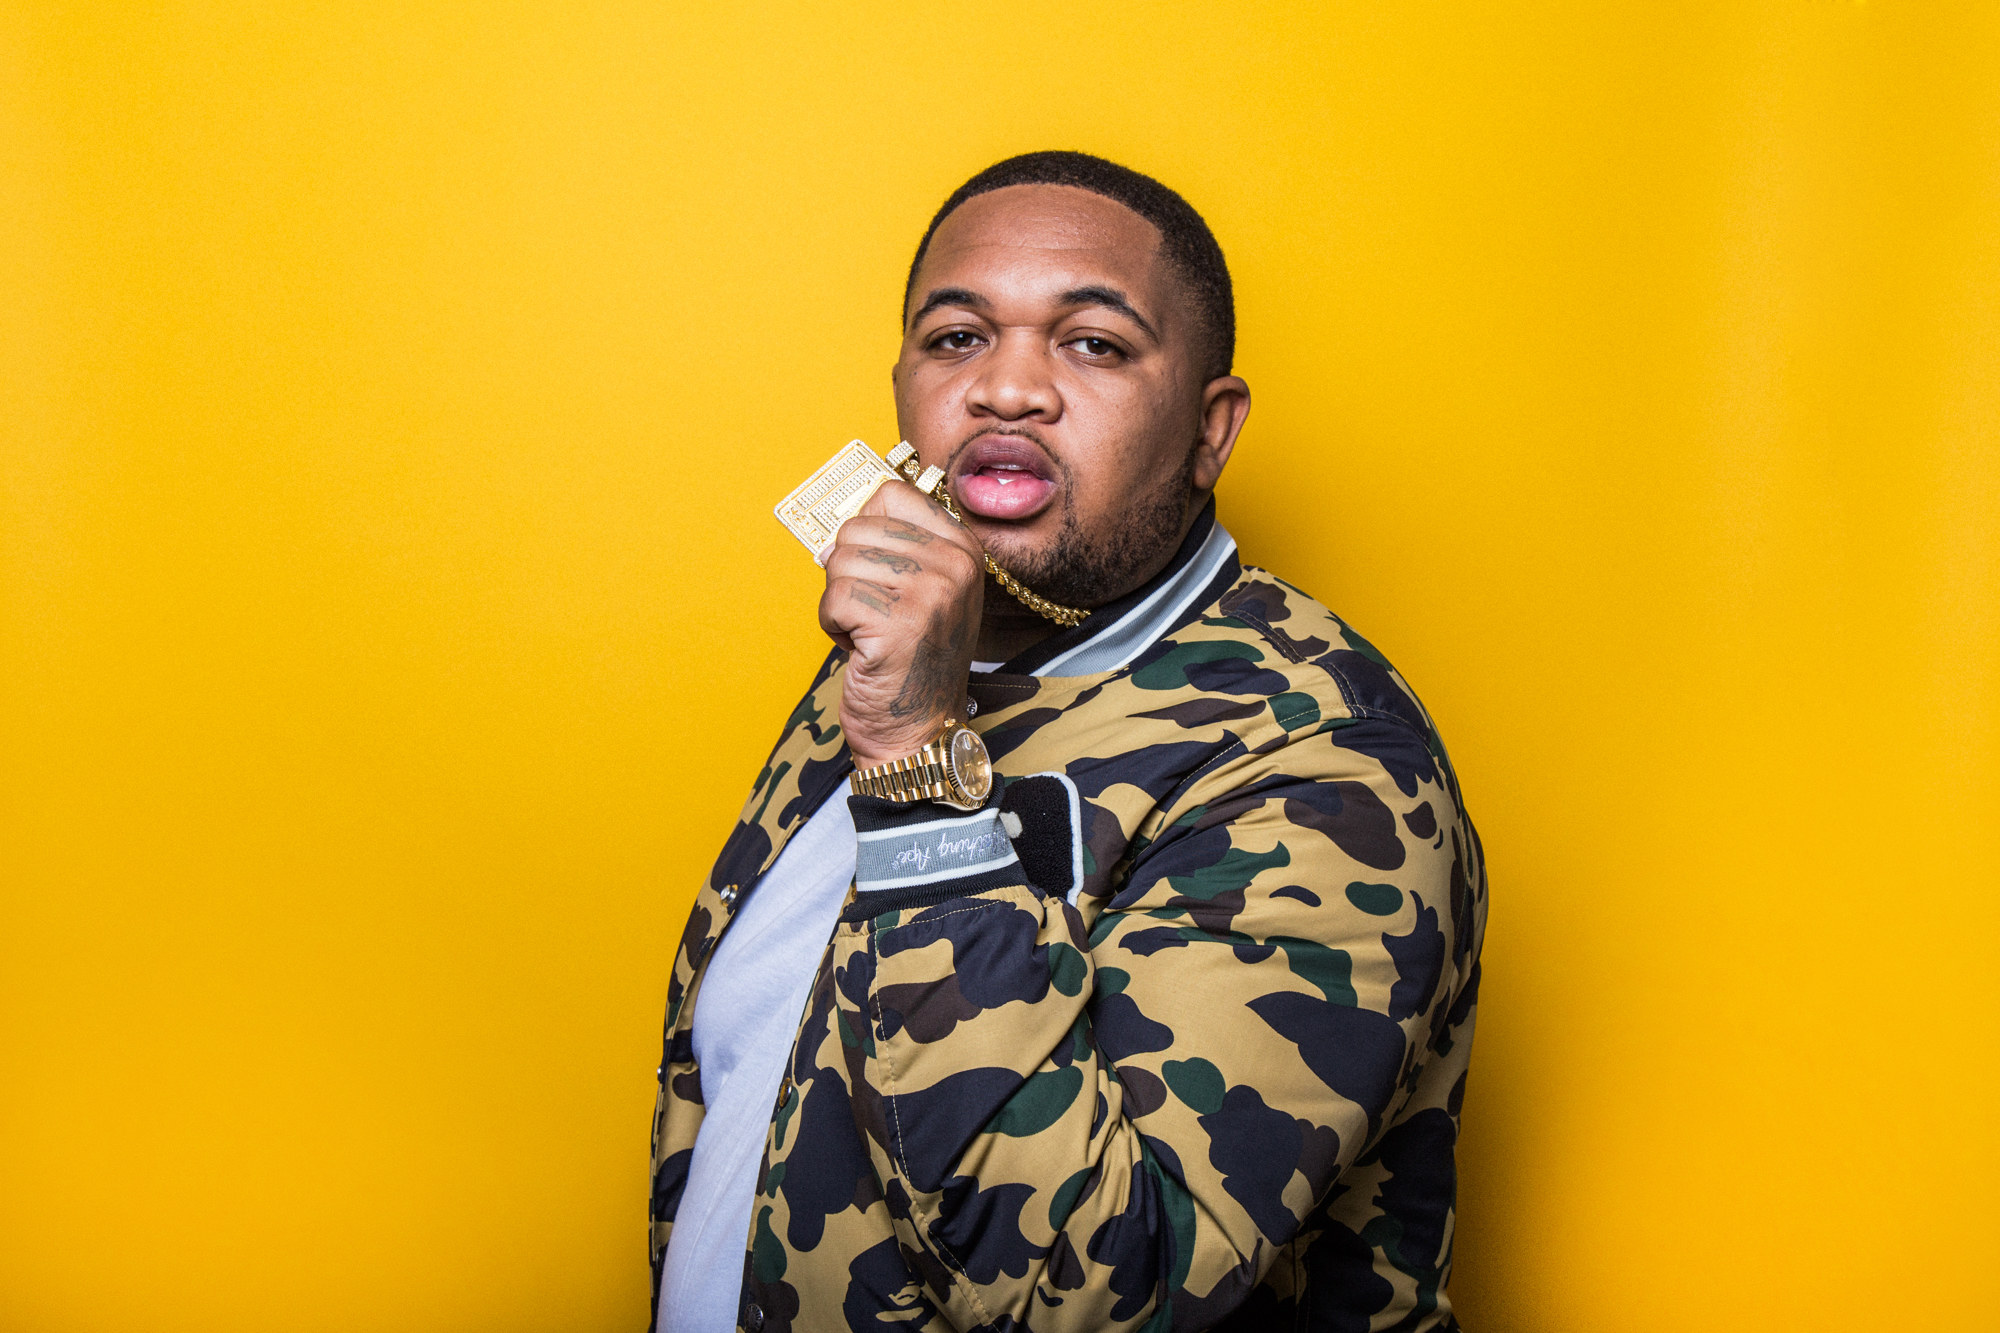 Dj Mustard - Don't Hurt Me Ft Jeremih & Nicki Minaj | LyricsFa